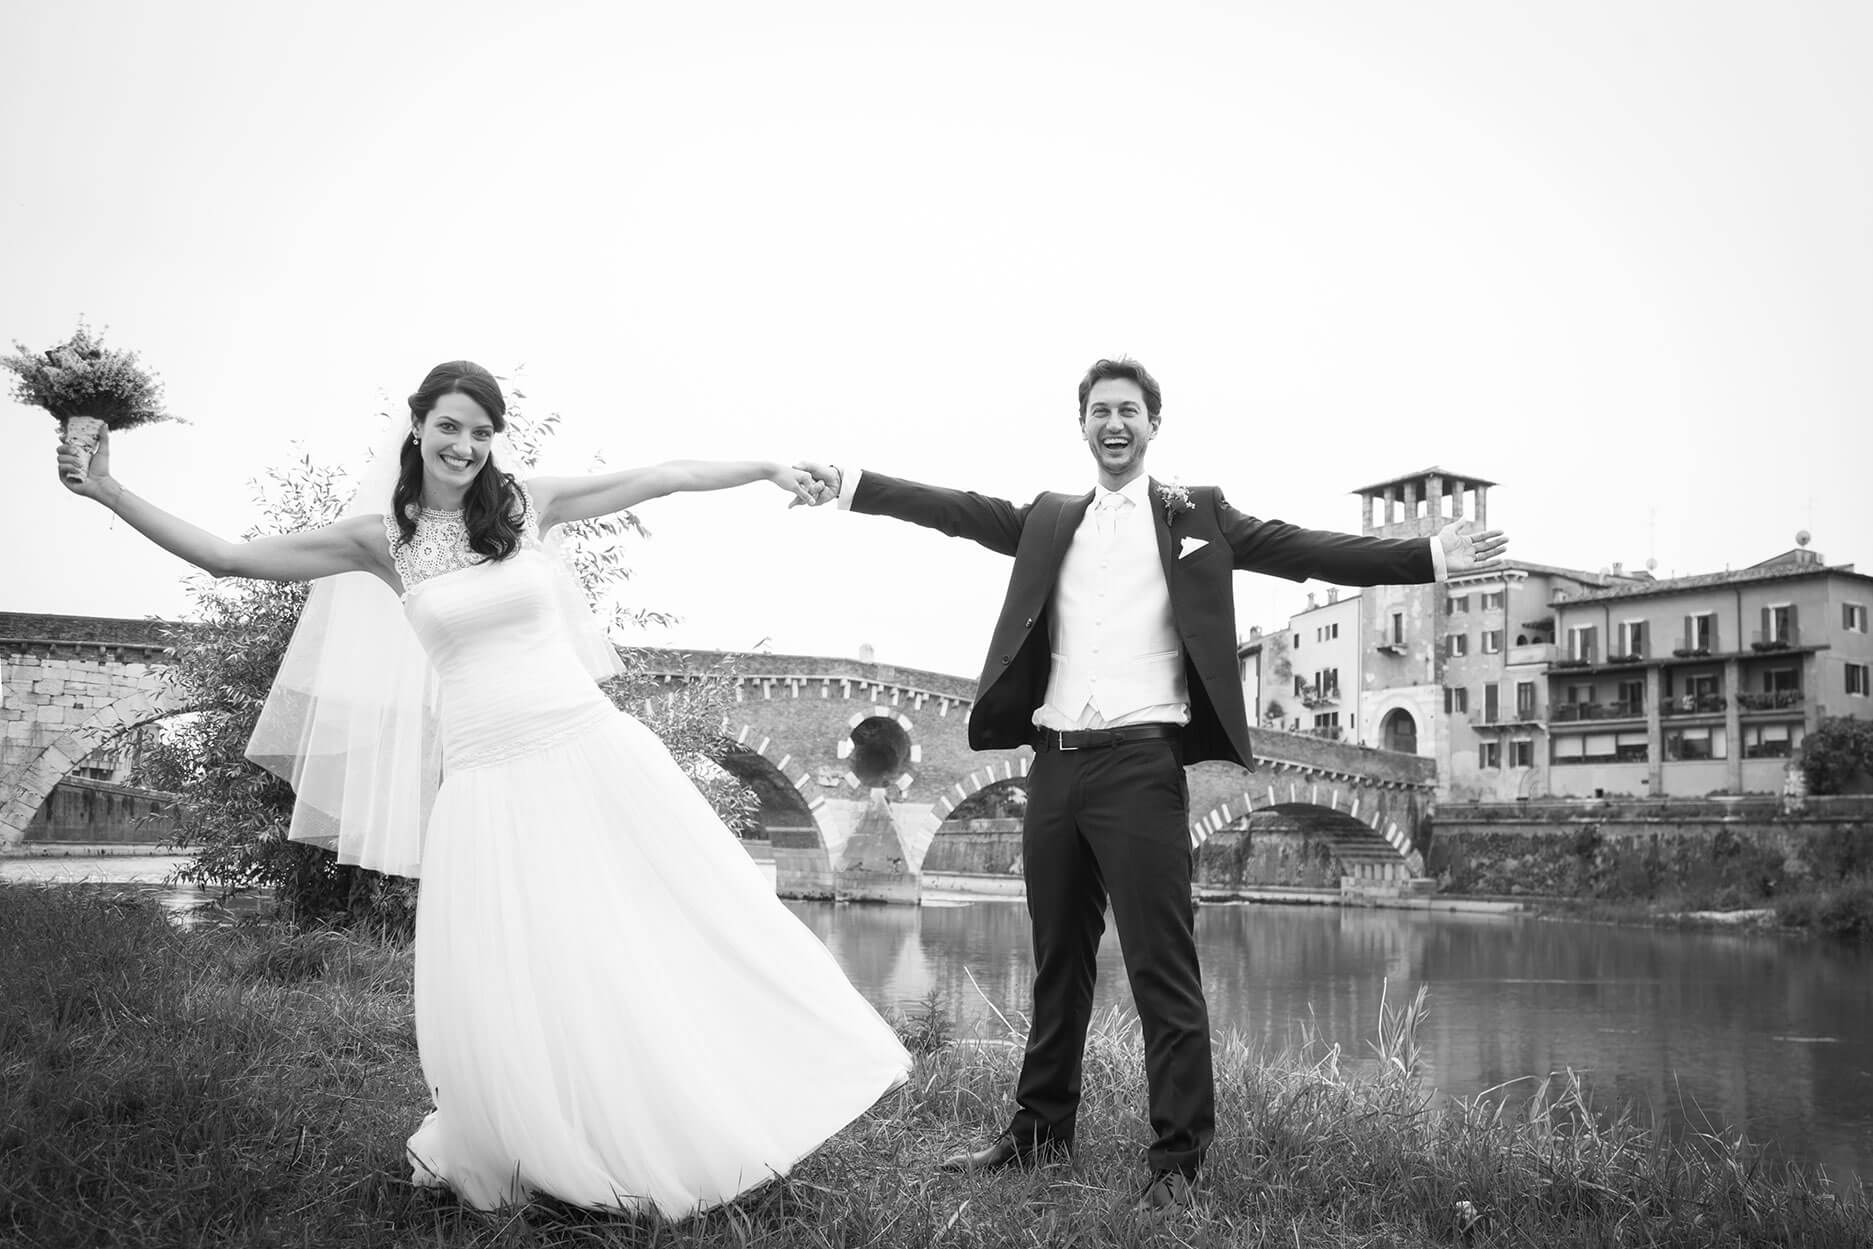 Francesca-Ferrati-WeddingIMG_0962